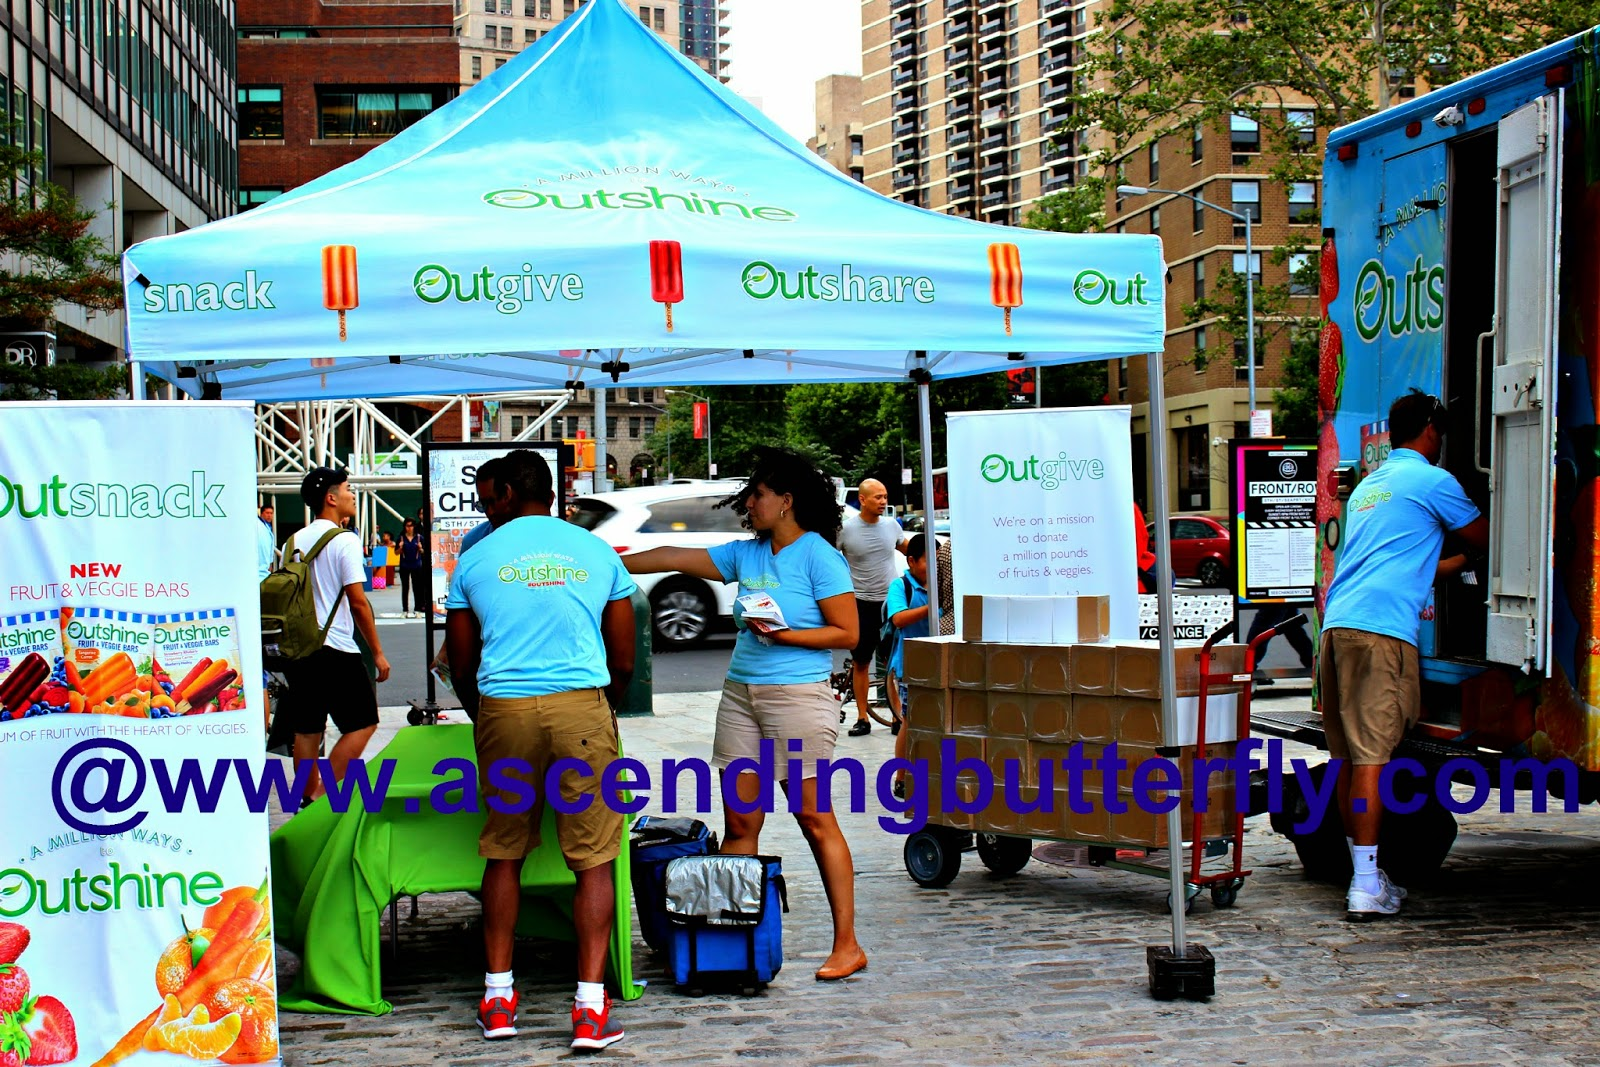 Outshine Snacks distributing frozen Fruit & Veggie Snack Bar Samples near Pearl Street New York City South Street Seaport